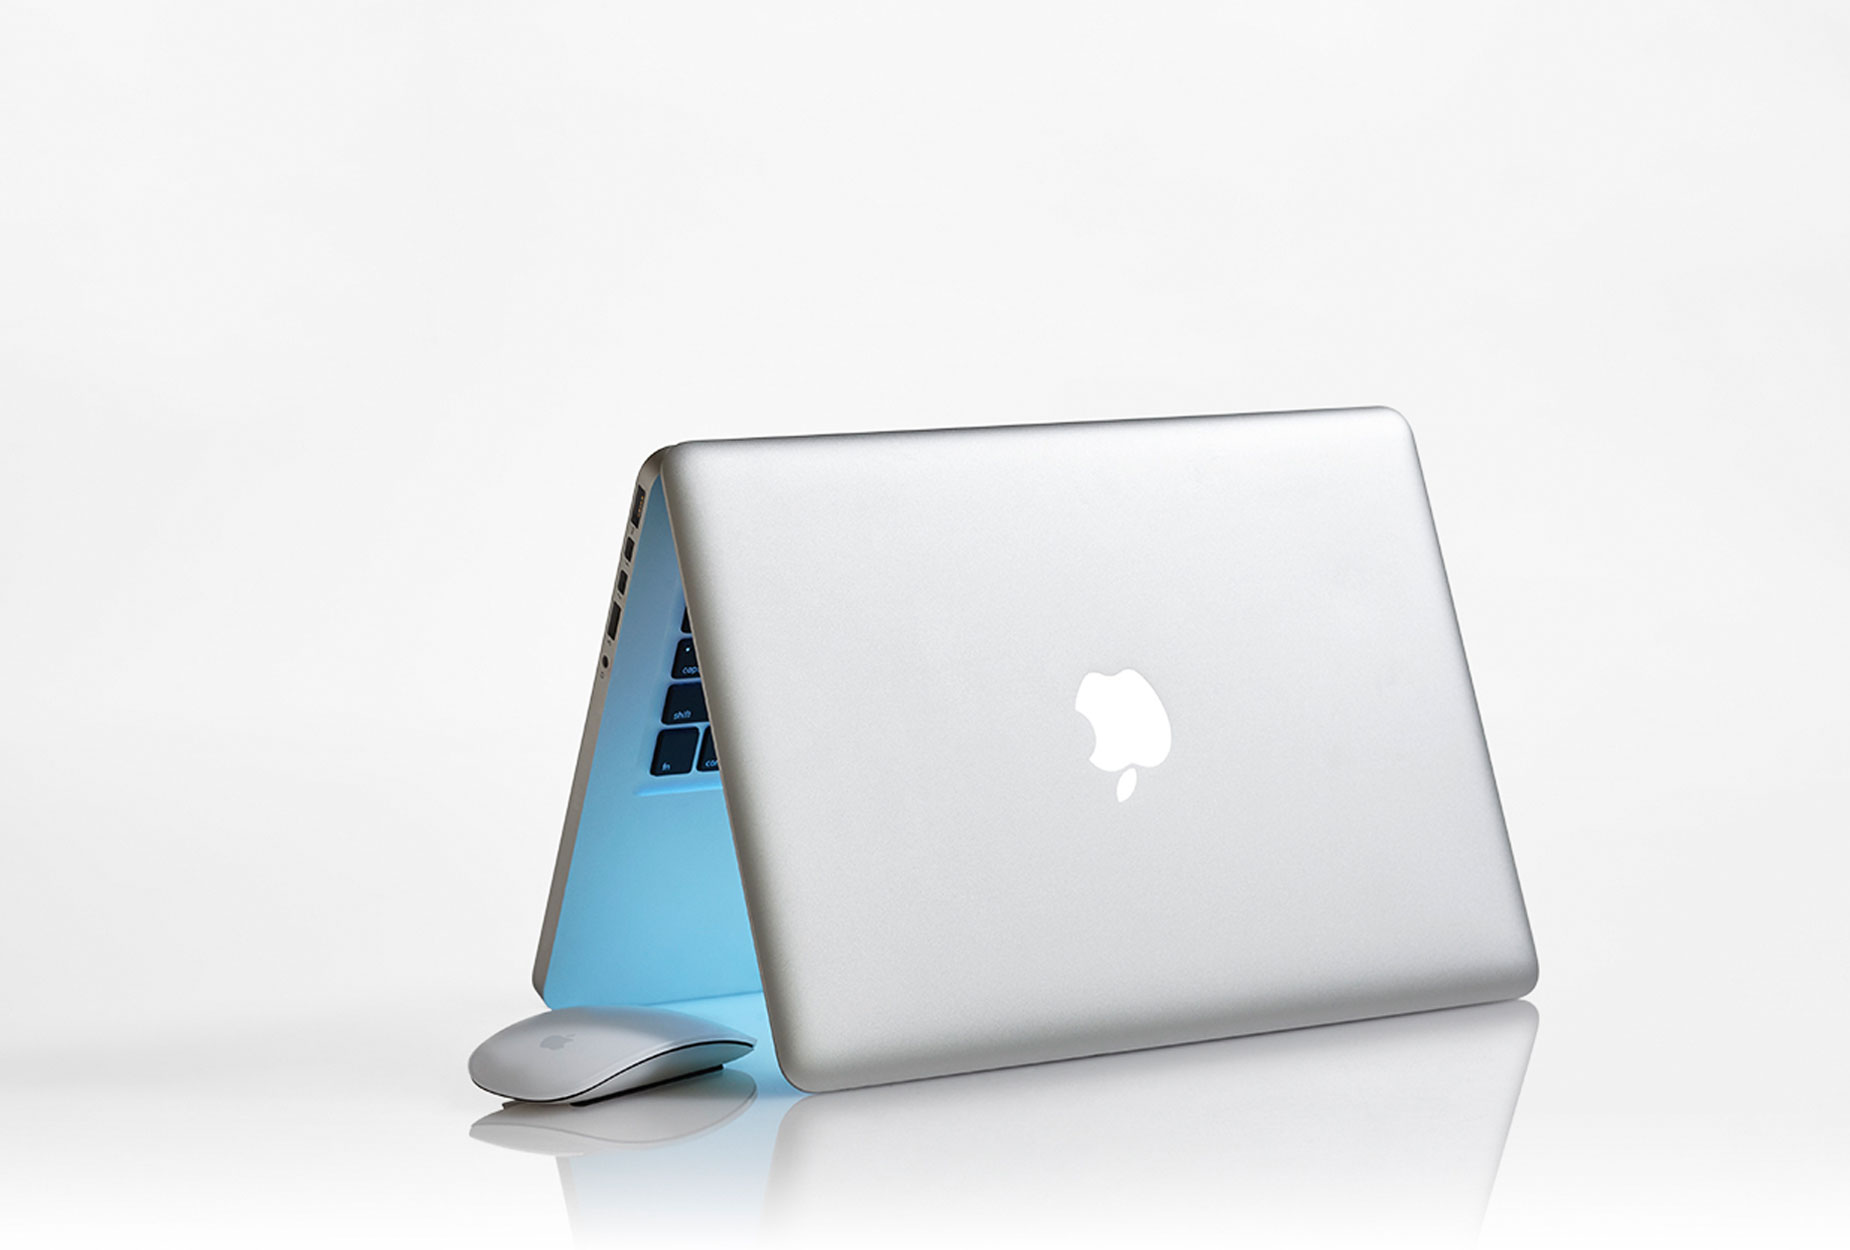 Apple Laptop | Product Still Life Photographer, Marshall Gordon